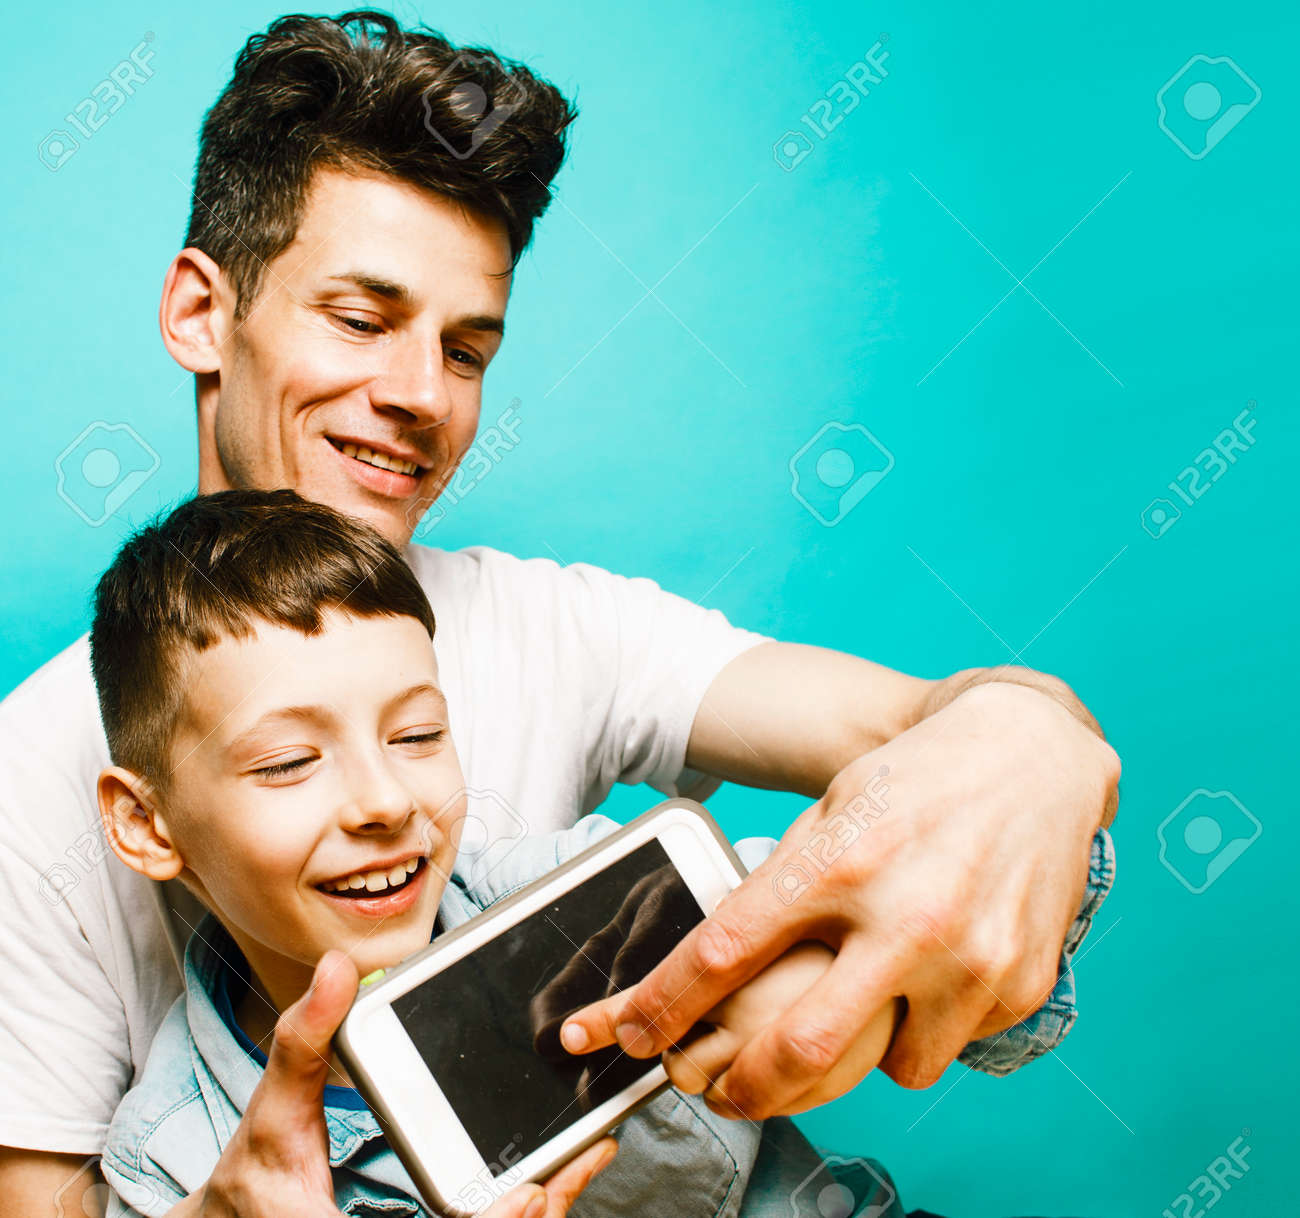 young pretty man model with little cute son playing together, lifestyle modern people concept, family male - 145368794